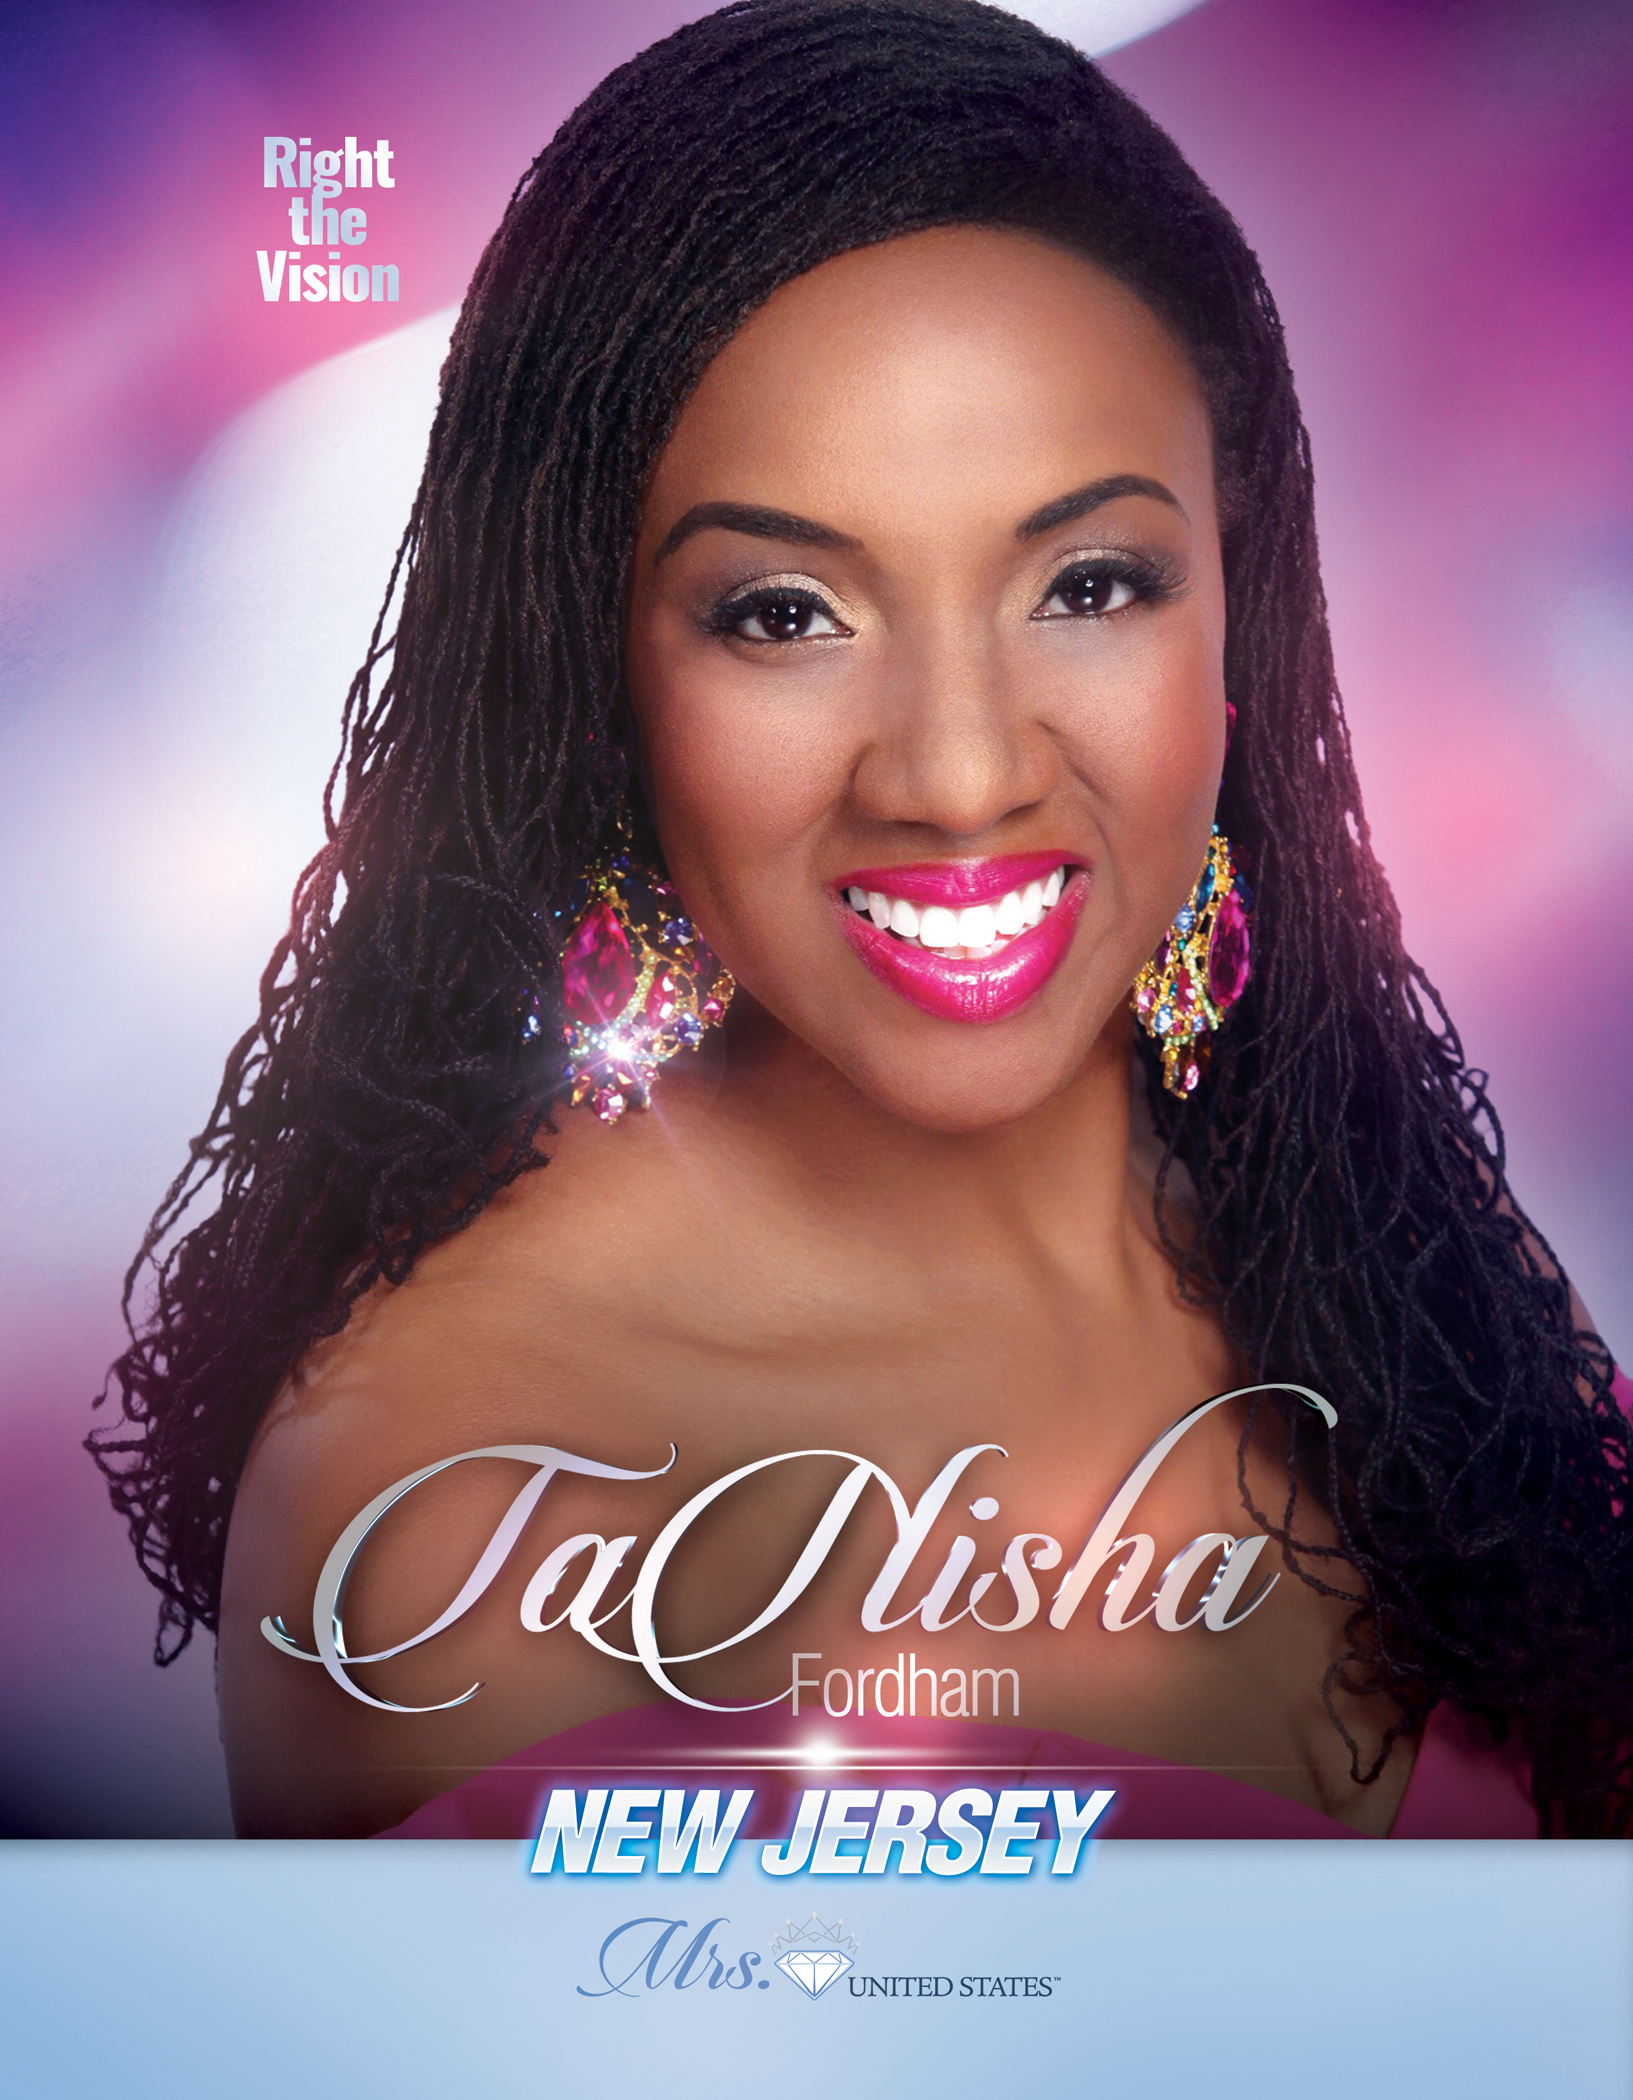 TaNisha Fordham Mrs. New Jersey United States - 2019